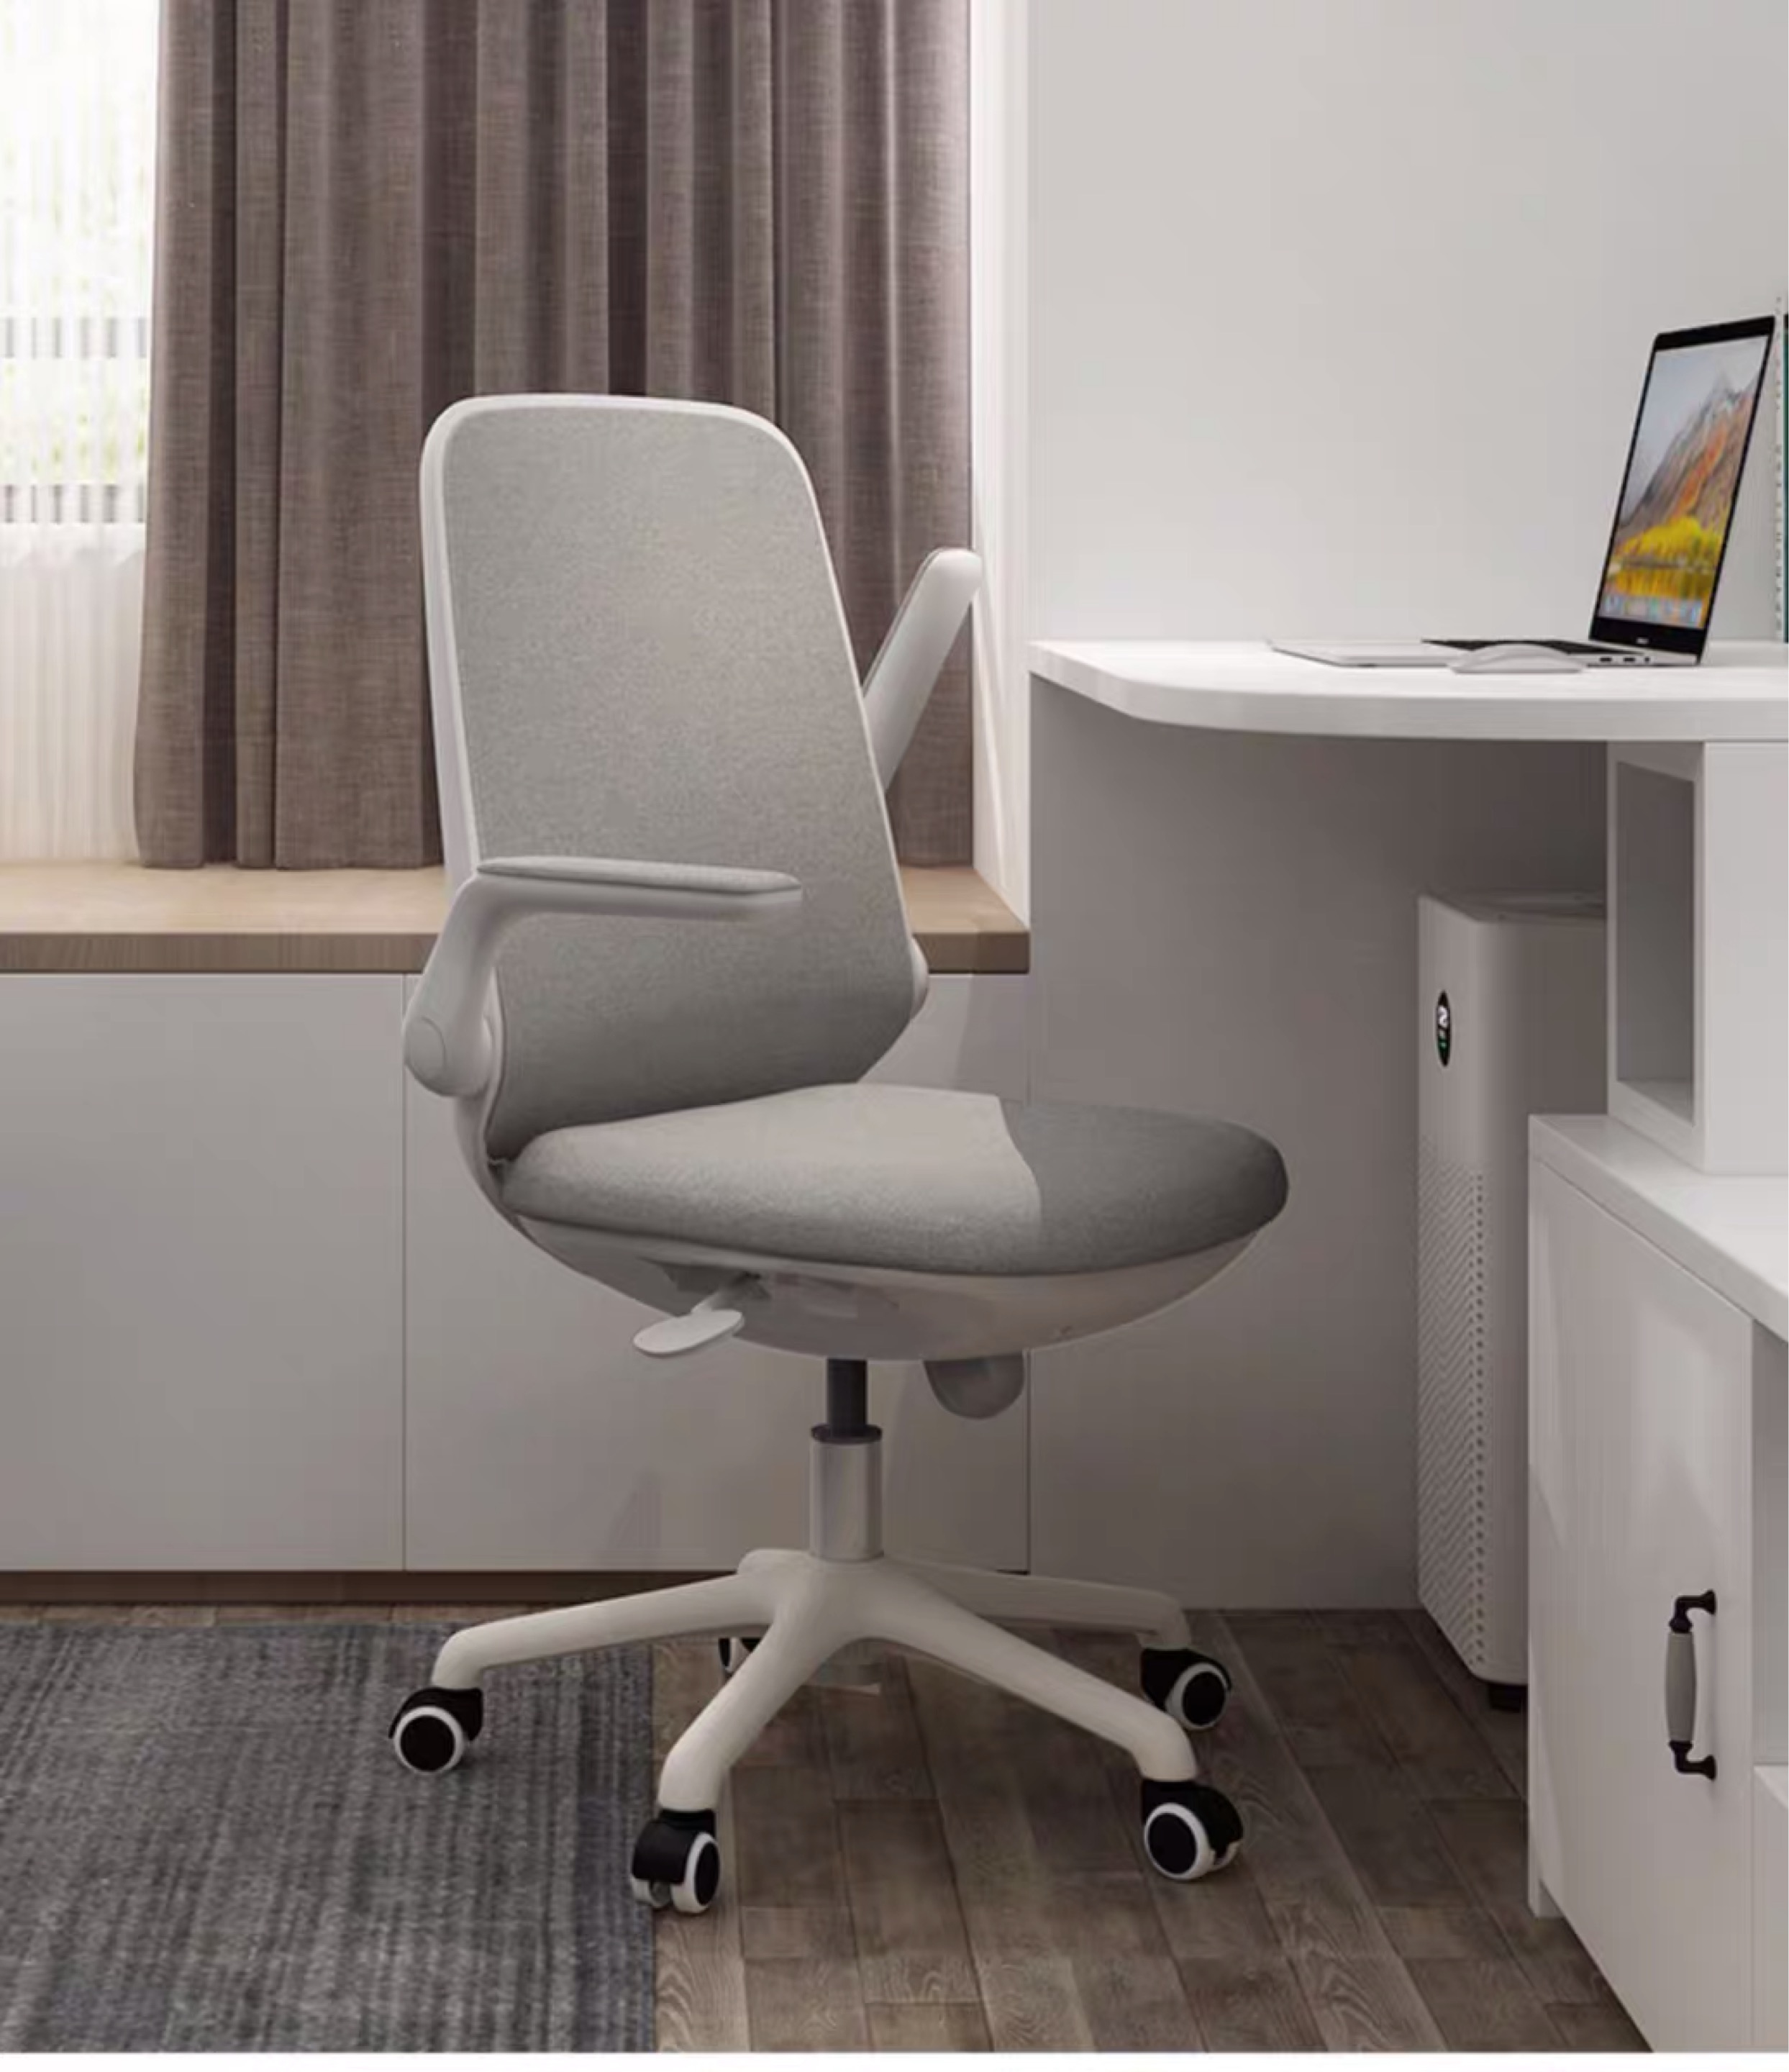 office chair-staff chair-mid back chair-design chair-project chair-chair project-foldable arm chair